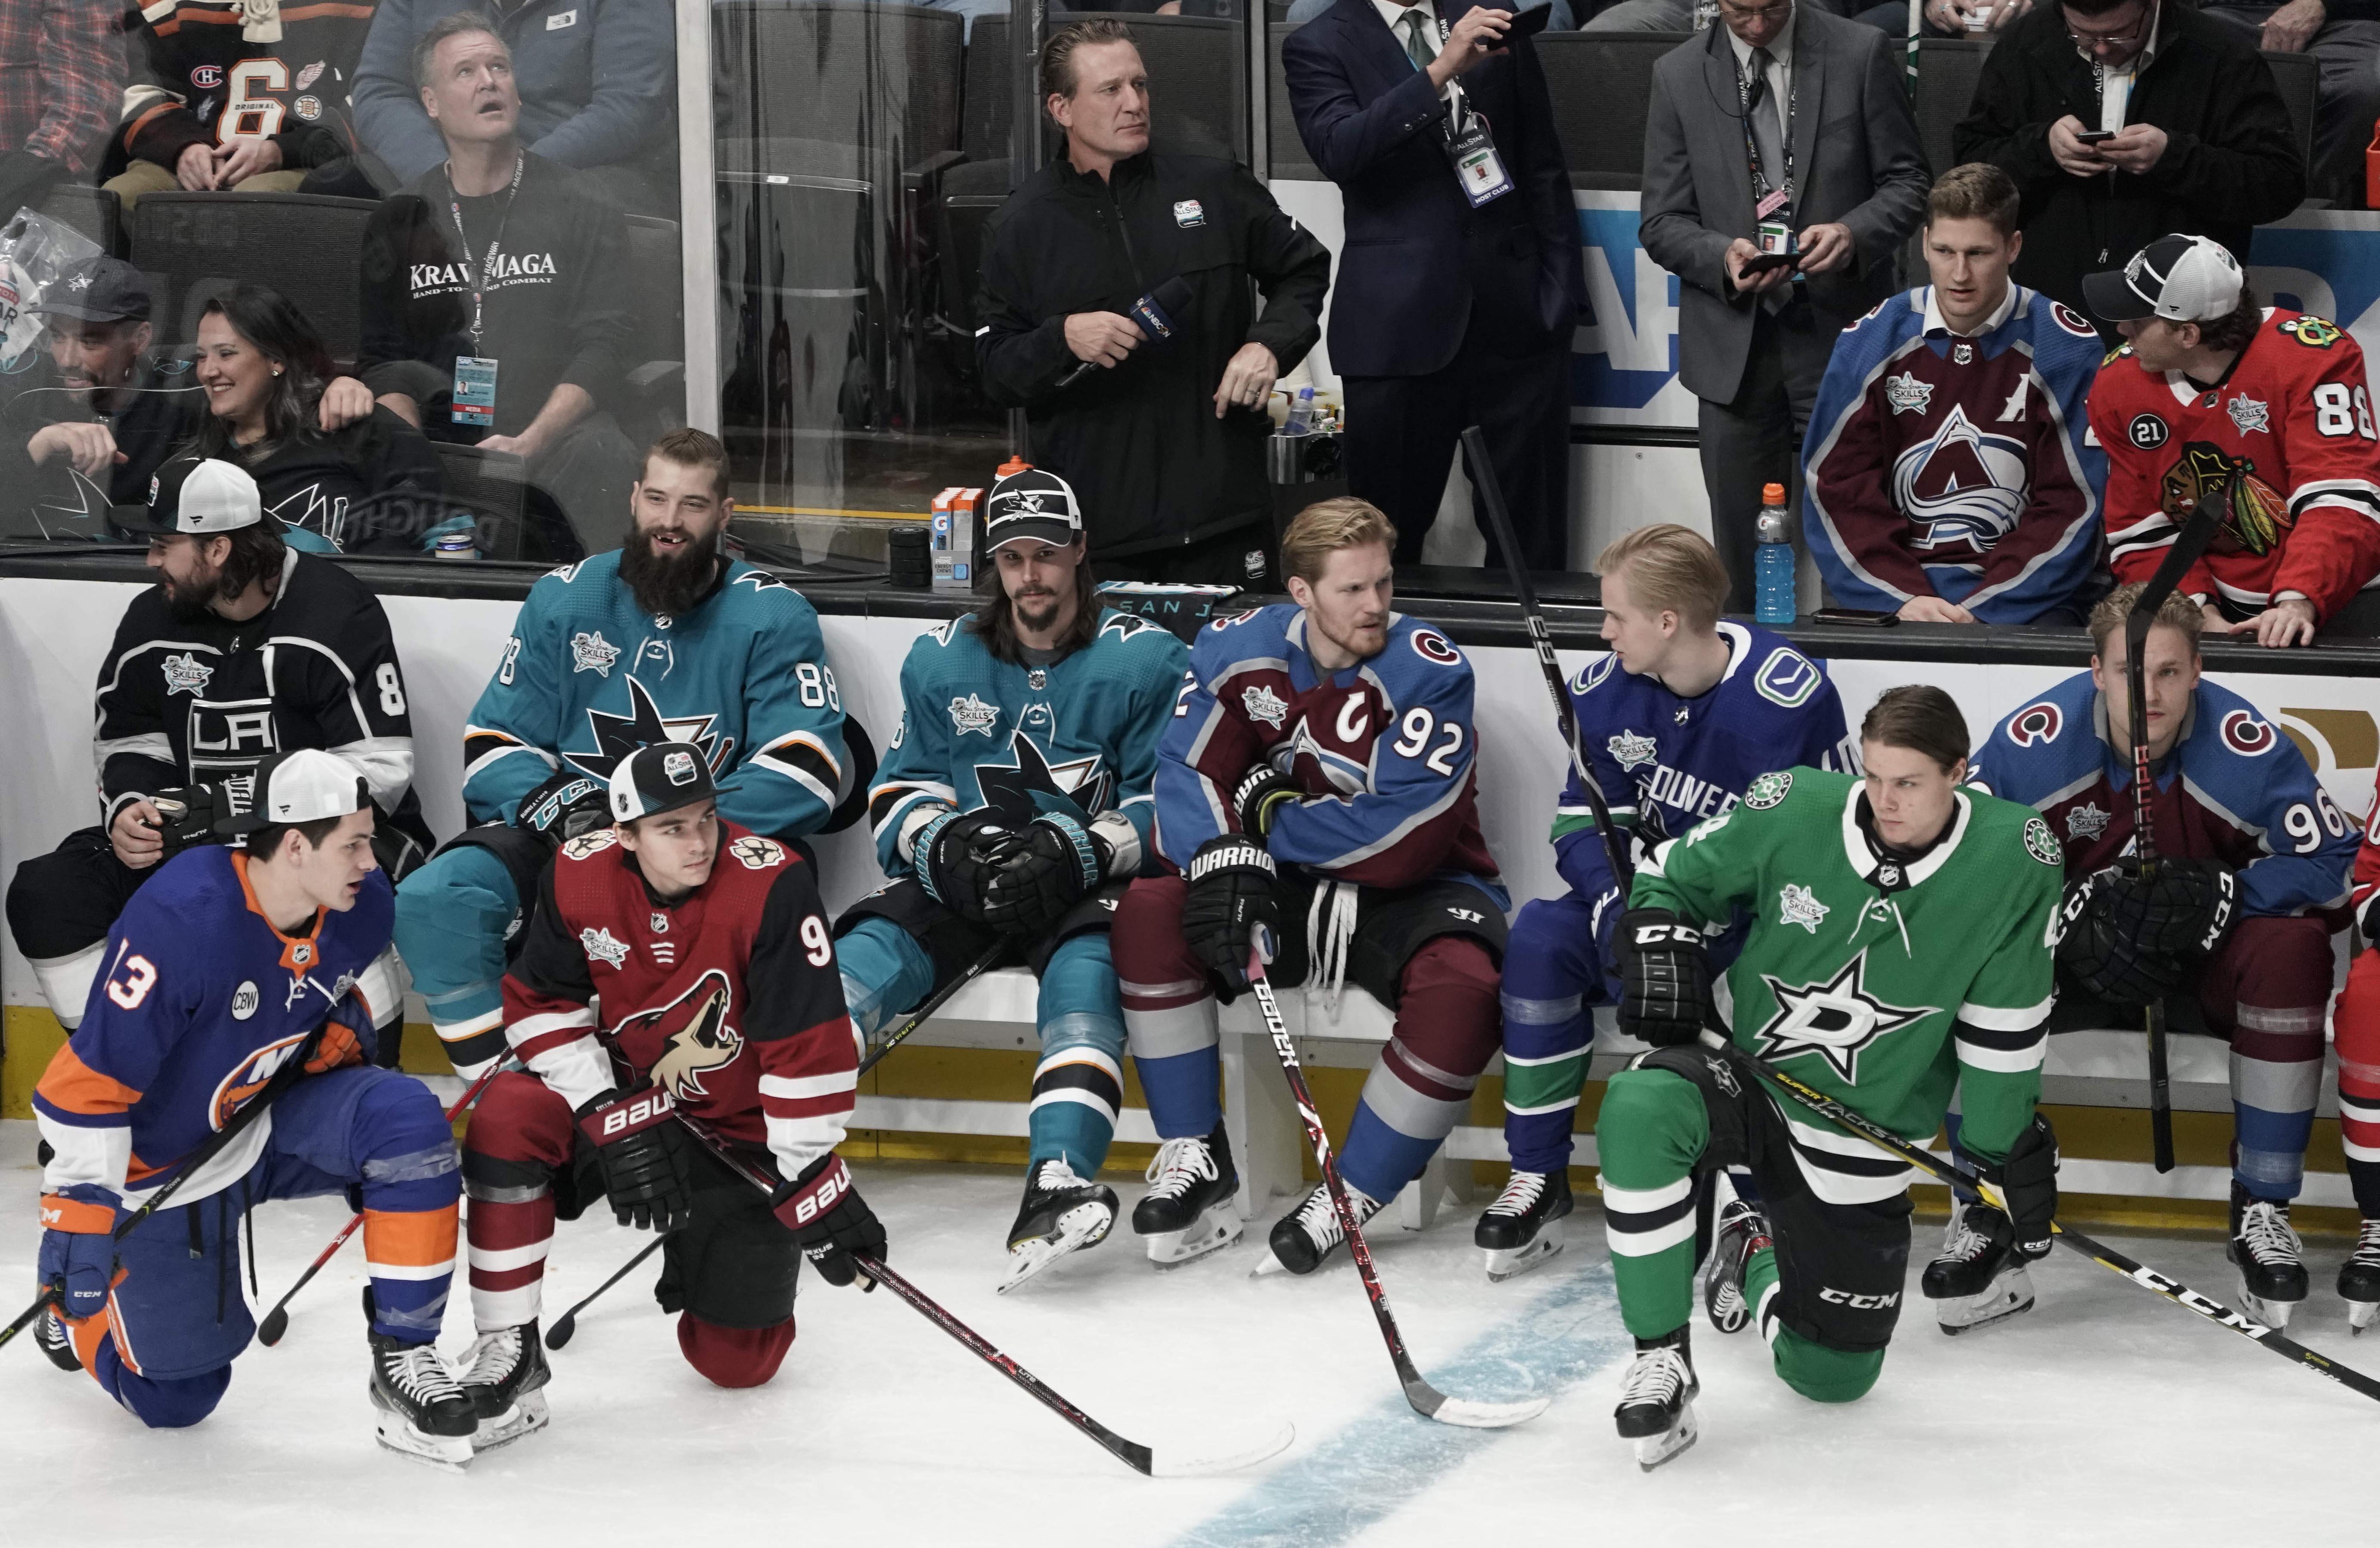 Jan 25, 2019; San Jose, CA, USA; Pacific Division and Central Division players look on in the 2019 NHL All Star Game skills competition at SAP Center.